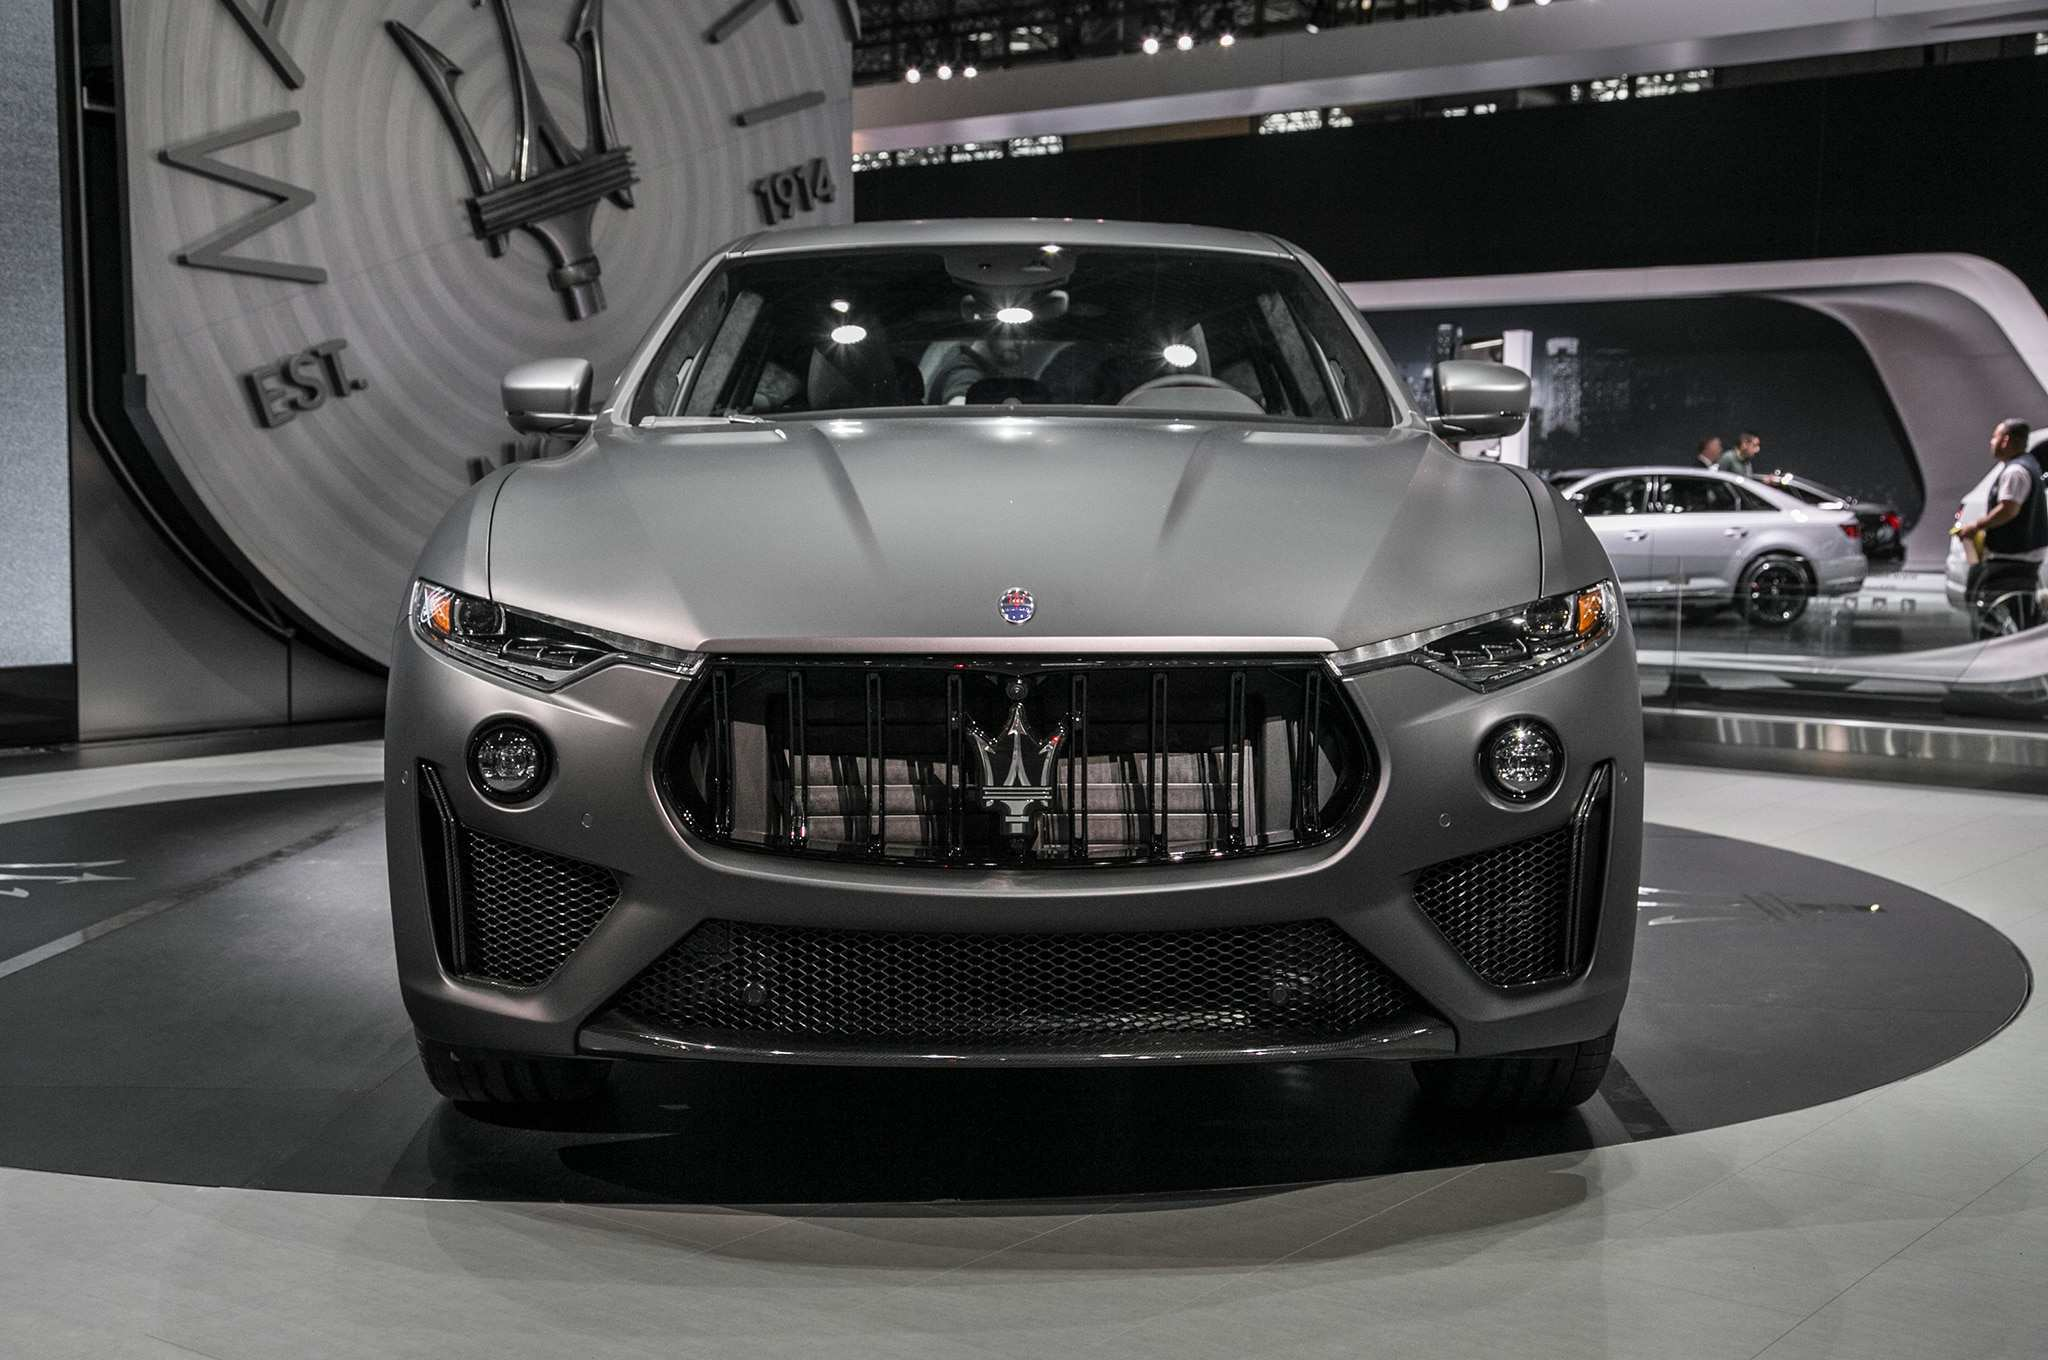 88 Gallery of 2019 Maserati Levante Trofeo Specs with 2019 Maserati Levante Trofeo